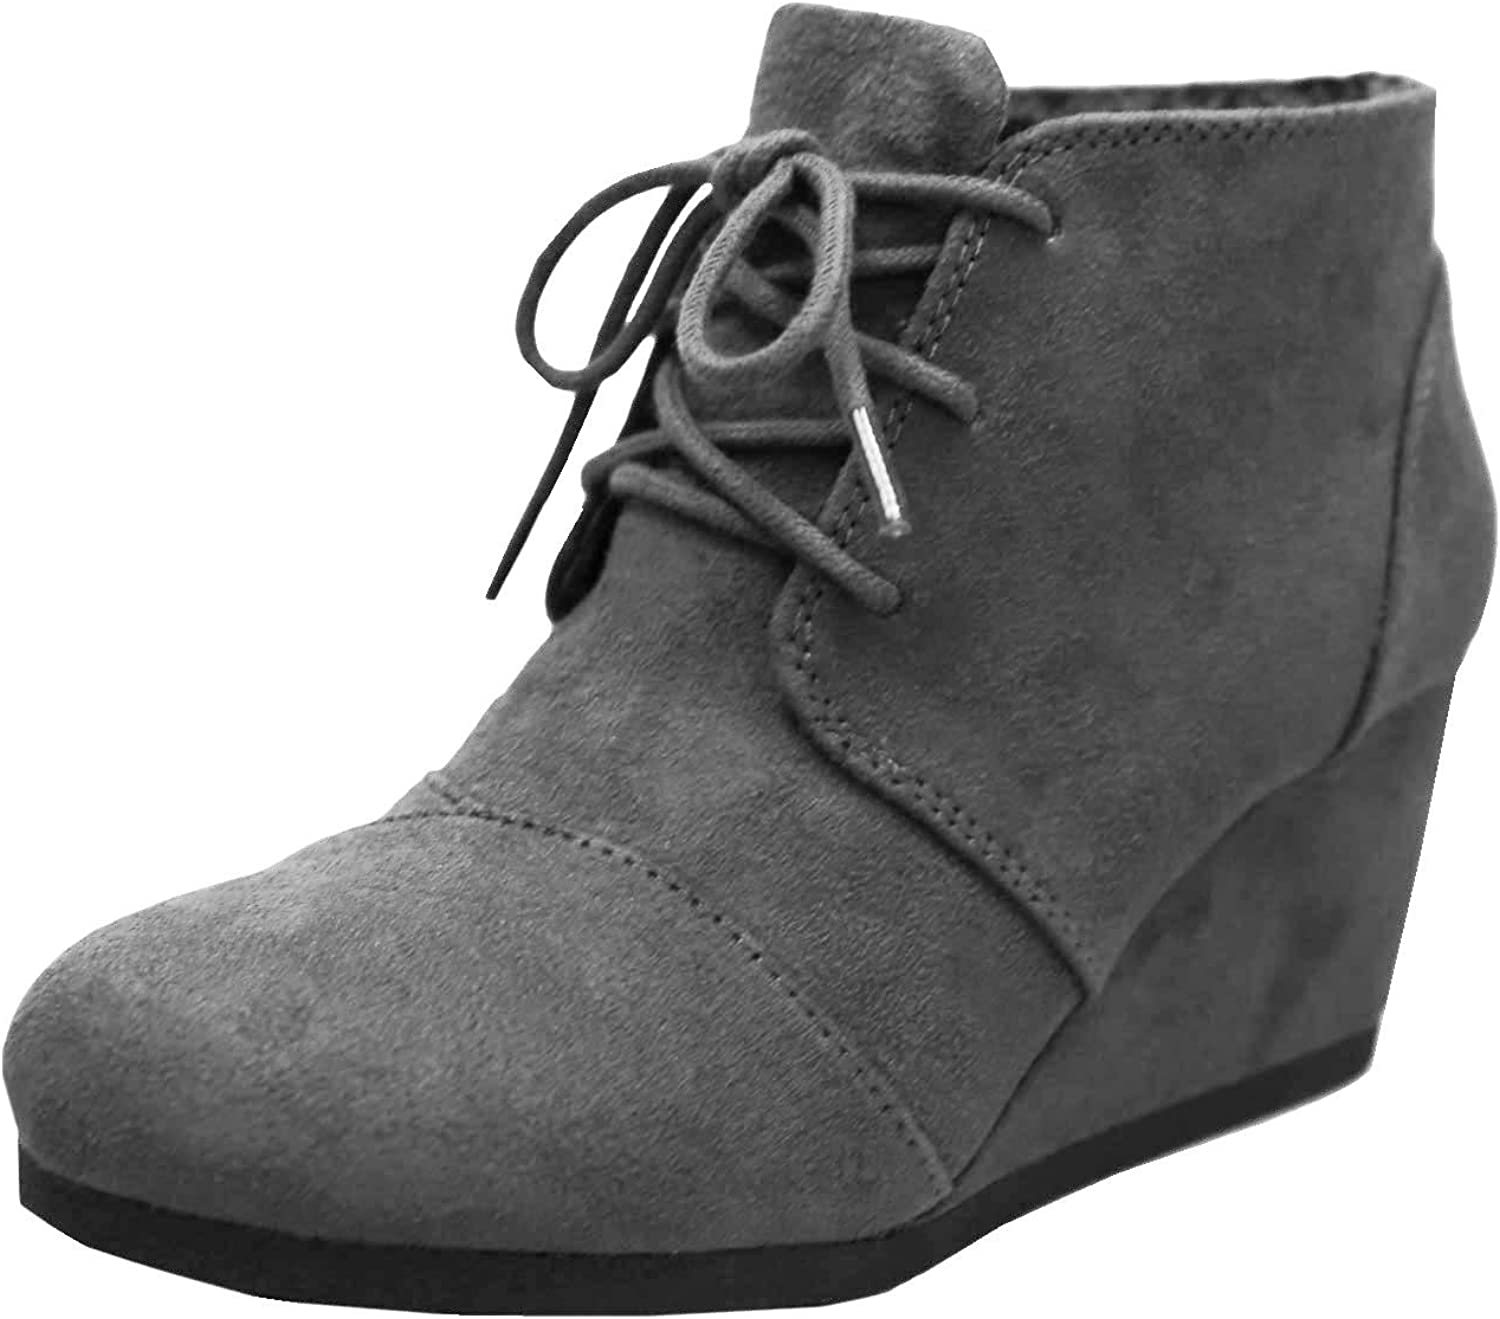 Cambridge Select Women's Classic Round Toe Lace-Up Wrapped Wedge Oxford Ankle Bootie